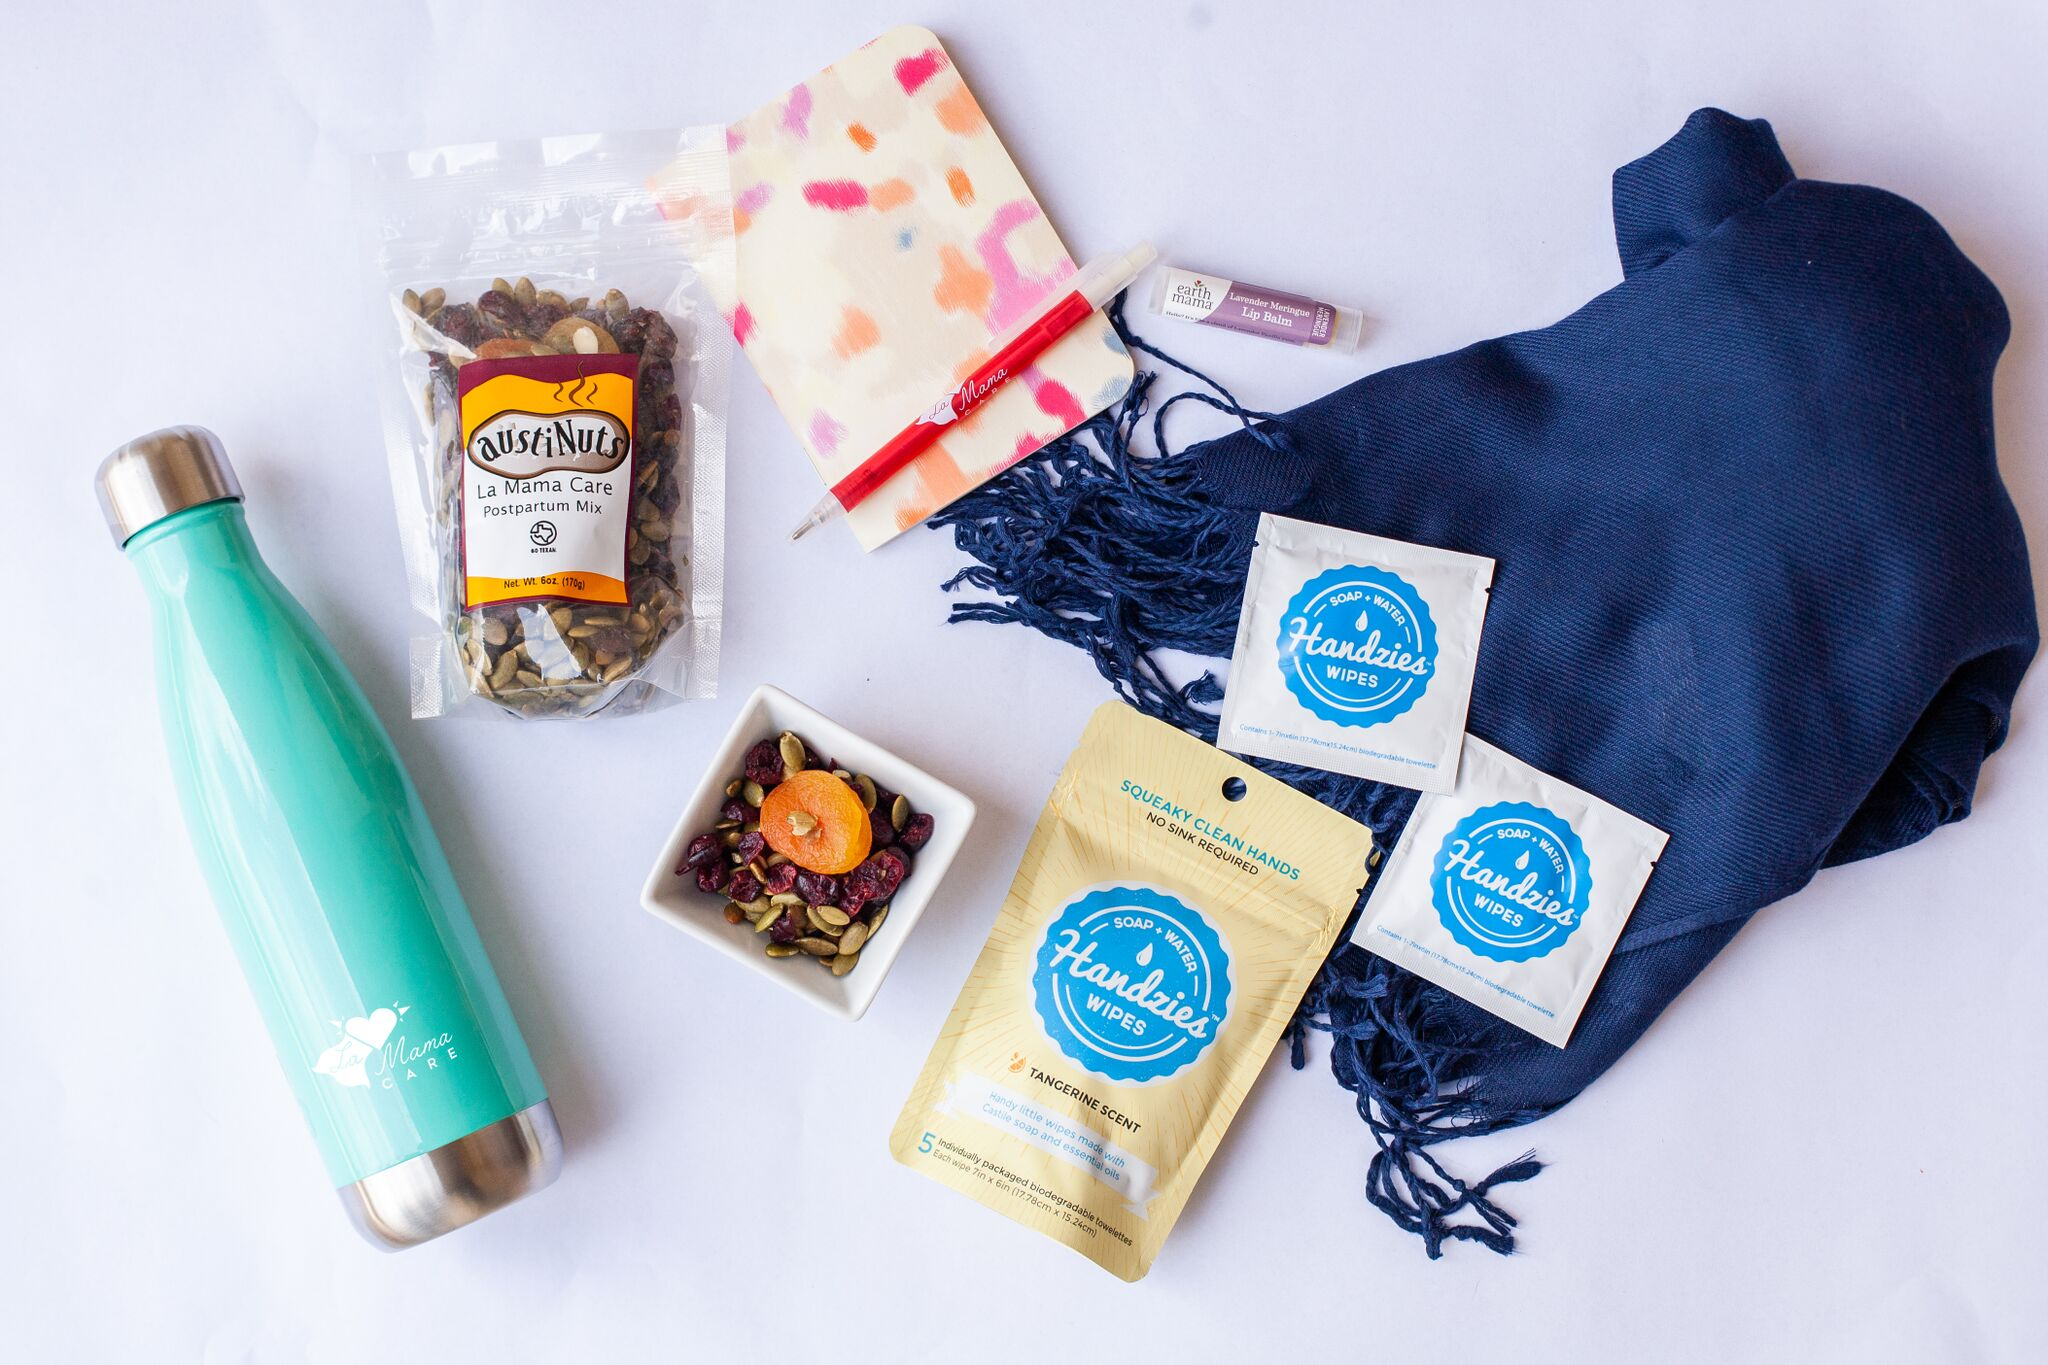 We see you, Mama. - Our signature postpartum kits are curated specifically for new mamas by mamas. Each box includes supplies to help provide physical and mental support. Each item has been carefully vetted by The Mamas. We also order in small batches so we can adjust based on feedback from the mamas who get our kits.